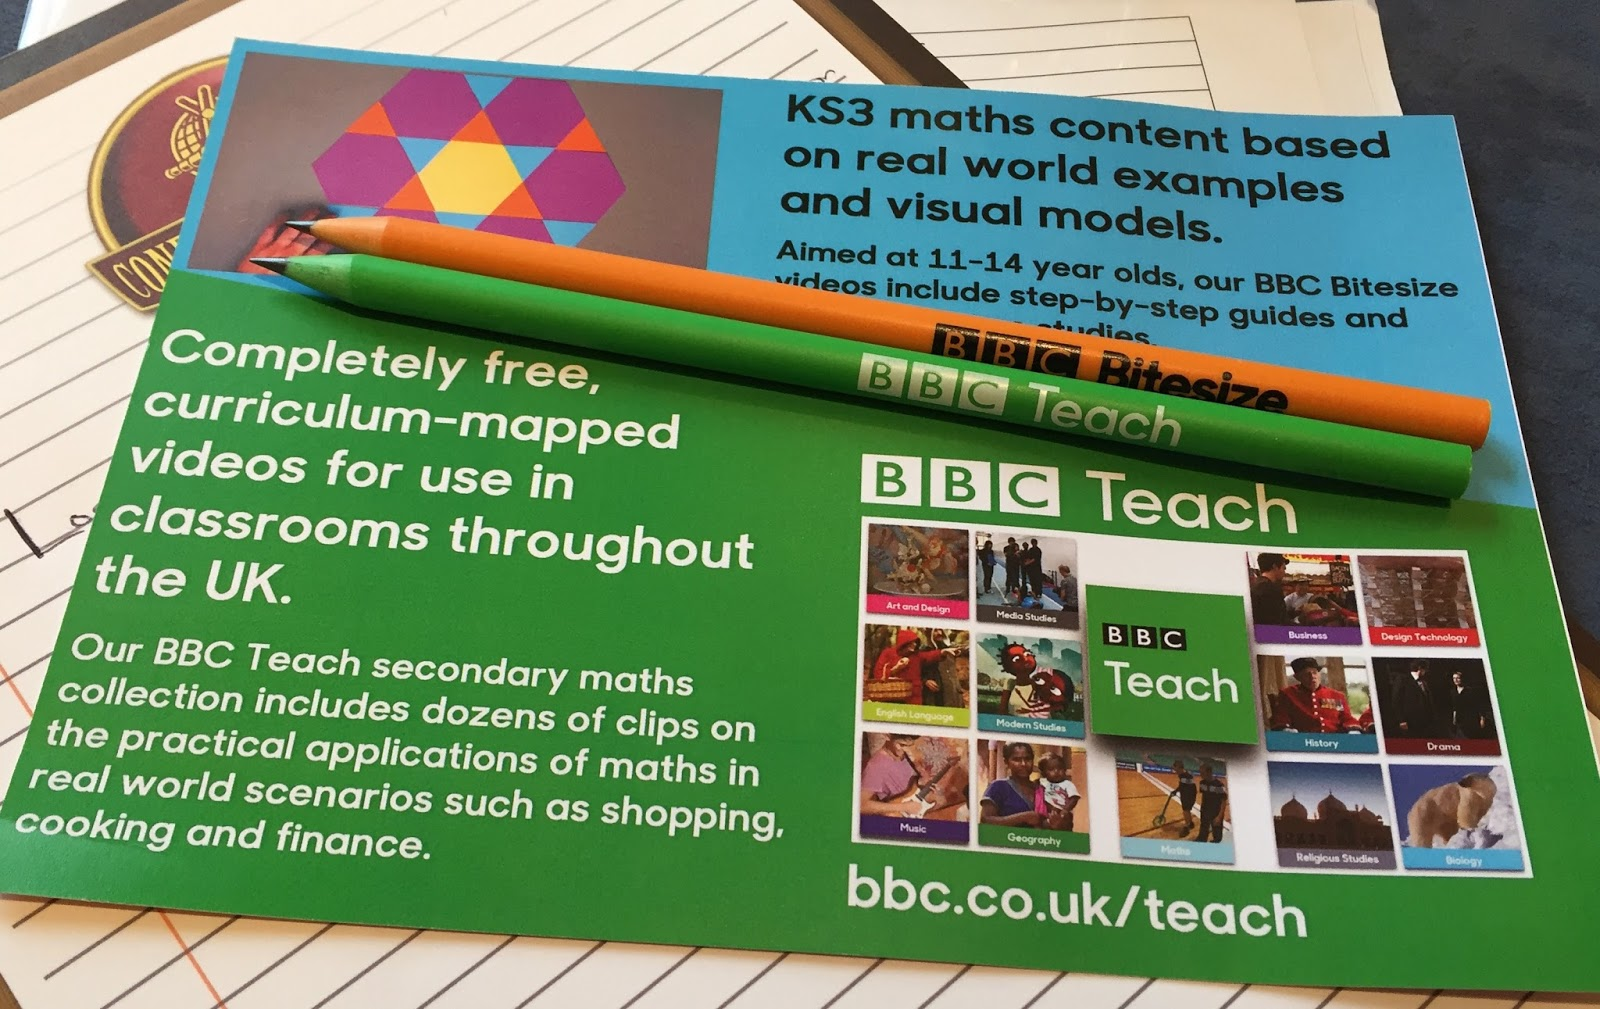 I Was Surprised To See A Bbc Stand As I've Not Seen One At A Maths  Conference Before  They Told Me About Their New Maths Videos For Use In  The Classroom